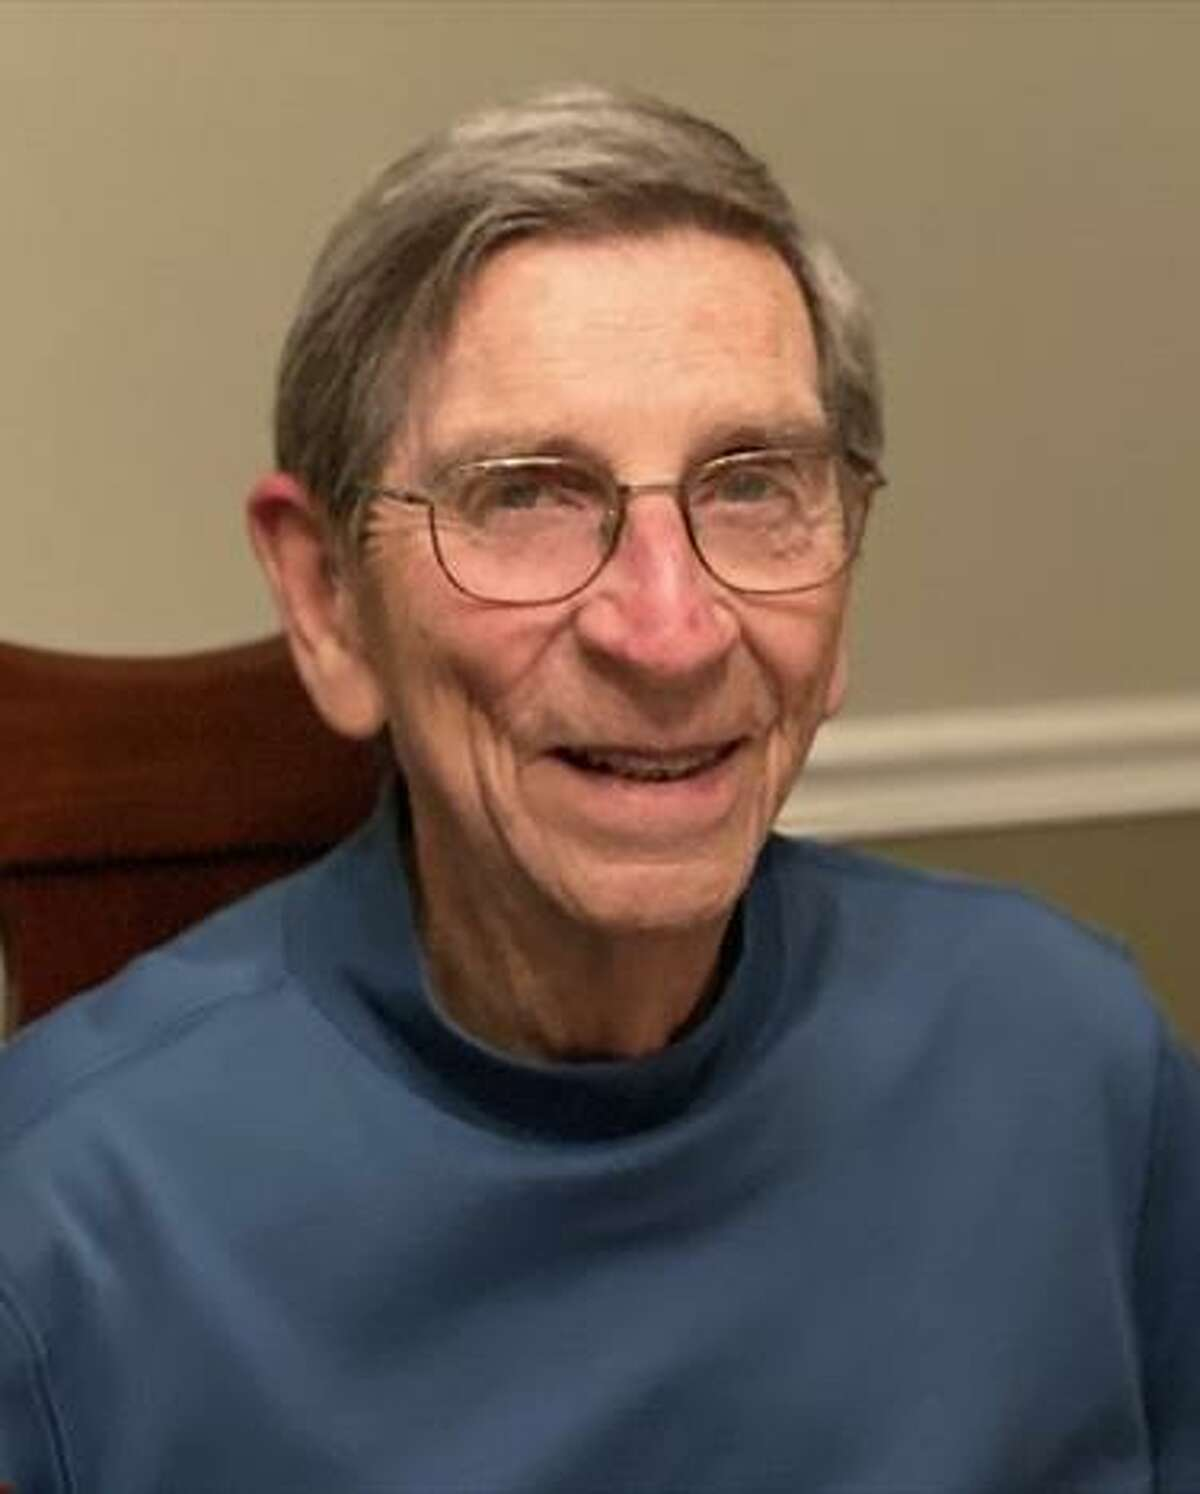 The Gilbert School's band founder and former leader Edward F. Keeley, 89, died Feb. 24.